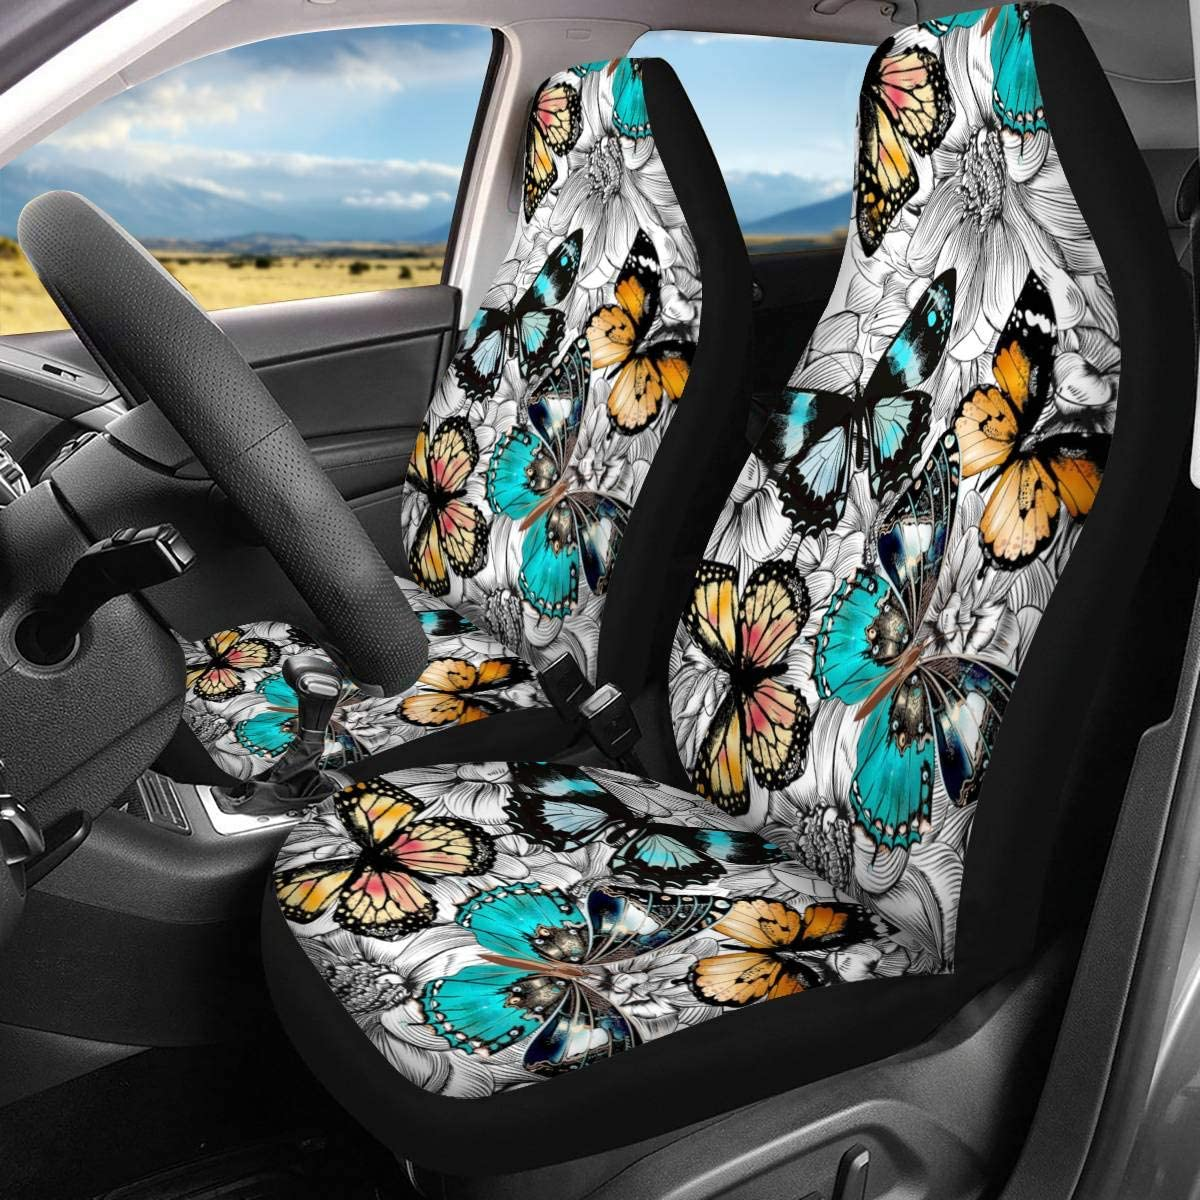 GLENLCWE Galaxy Cosmic Star Print Car Seat Covers for Women Men,Non Slip Car Seat Cushions Seat Protectors Fit for Most Vehicle,Set of 2